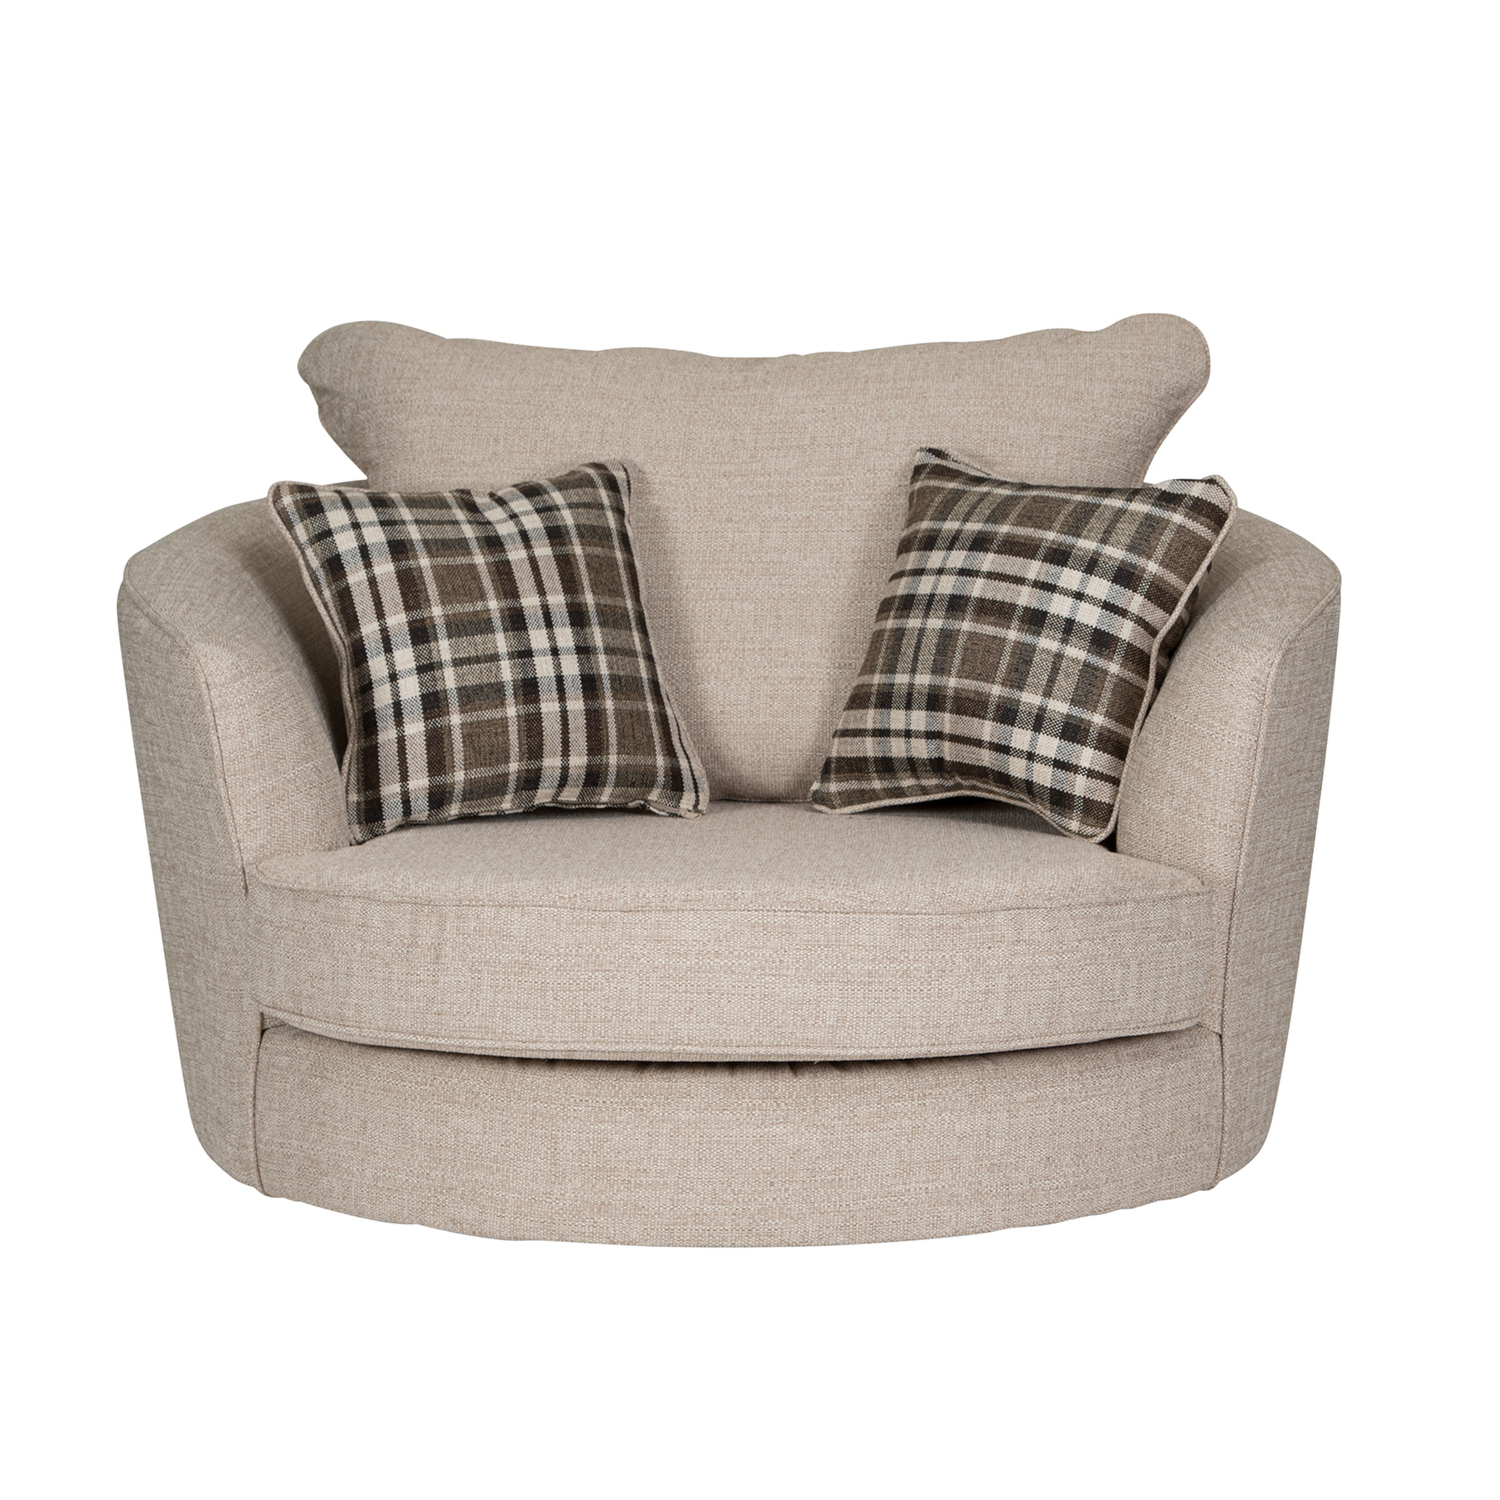 Sofa With Swivel Chair With Regard To Newest Wilcot Check Swivel Chair (View 14 of 20)